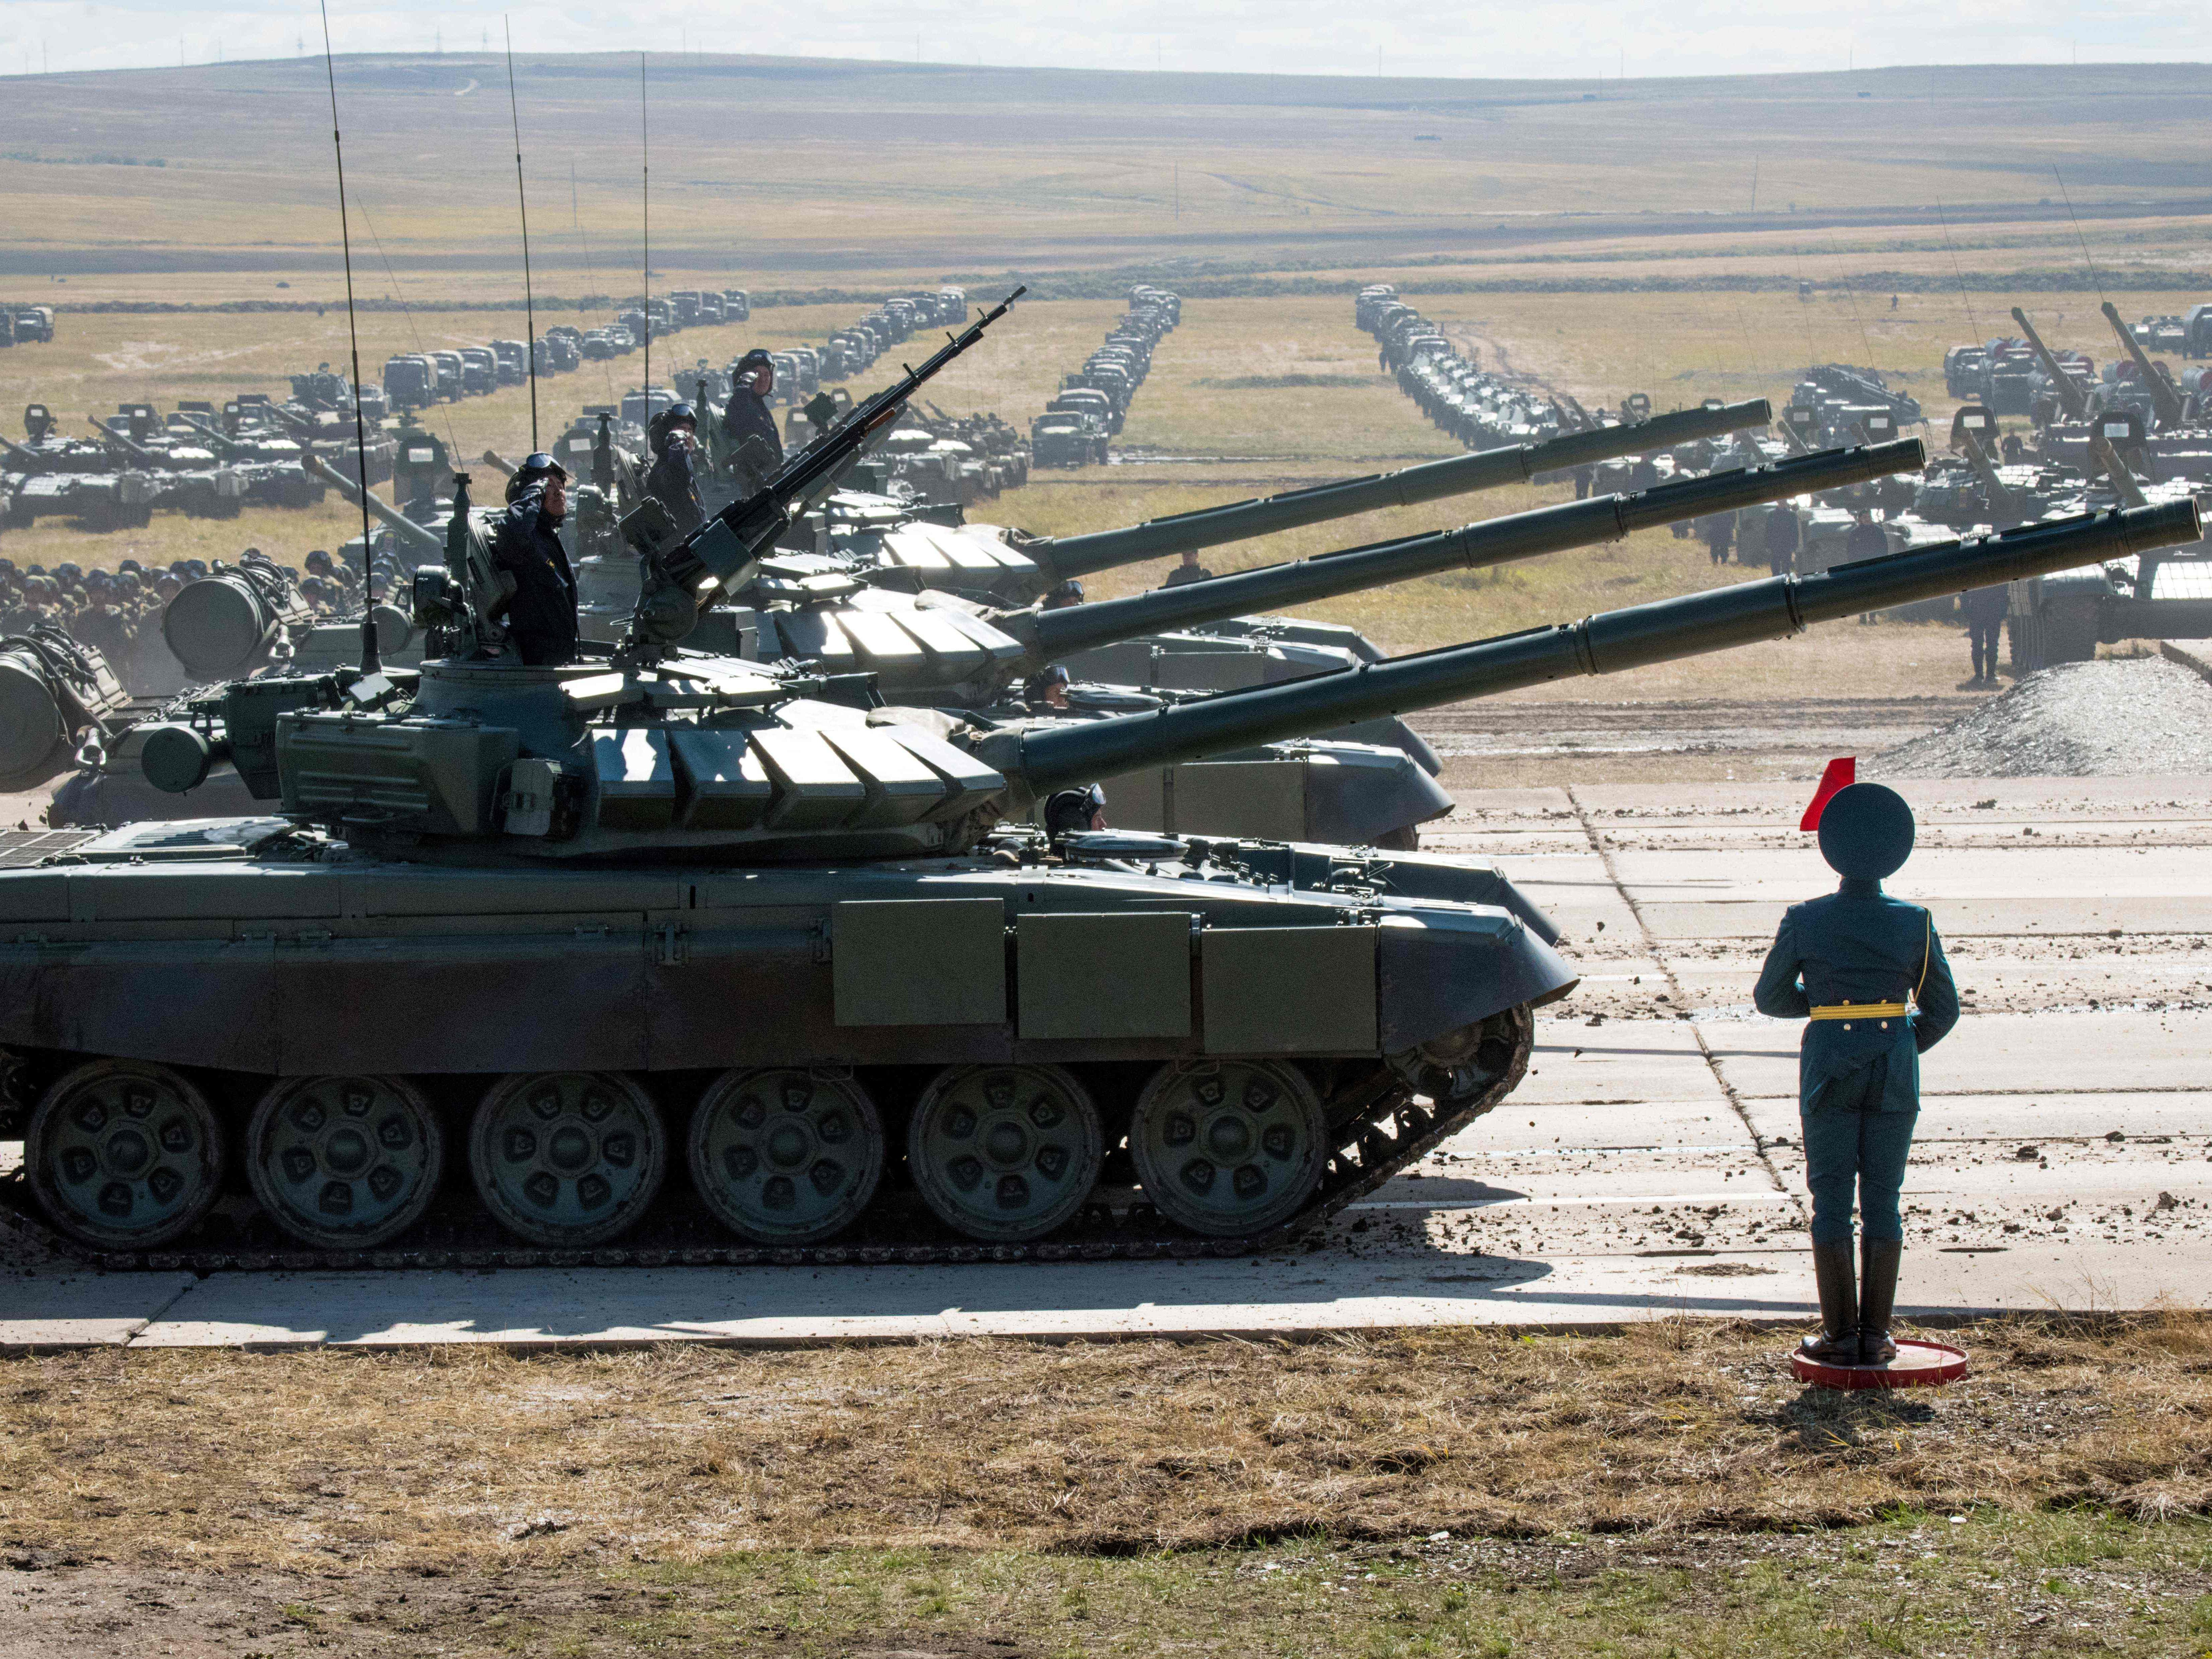 Russian, Chinese and Mongolian troops and military equipment parade at the end of the day of the Vostok-2018 (East-2018) military drills at Tsugol training ground not far from the Chinese and Mongolian border in Siberia, on September 13, 2018.